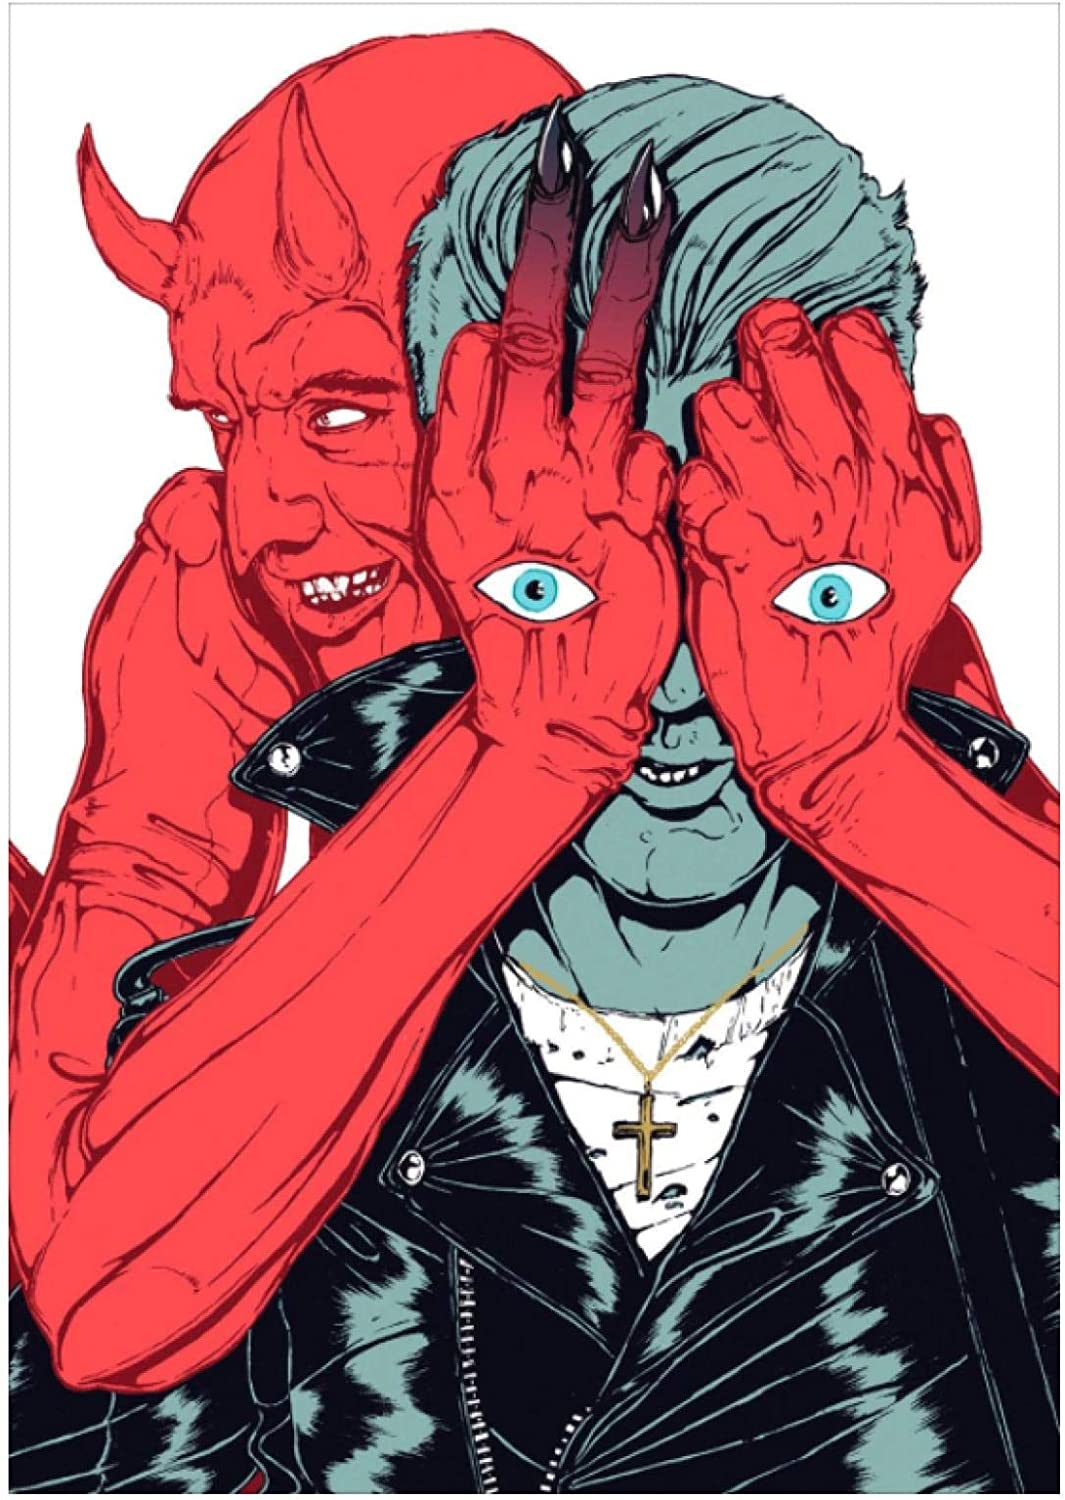 DrCor Queens of The Stone Age Qotsa Villains Poster Art Canvas Painting Sala de Estar Dormitorio Decoración del hogar -20x28 Pulgadas Sin Marco 1 PCS